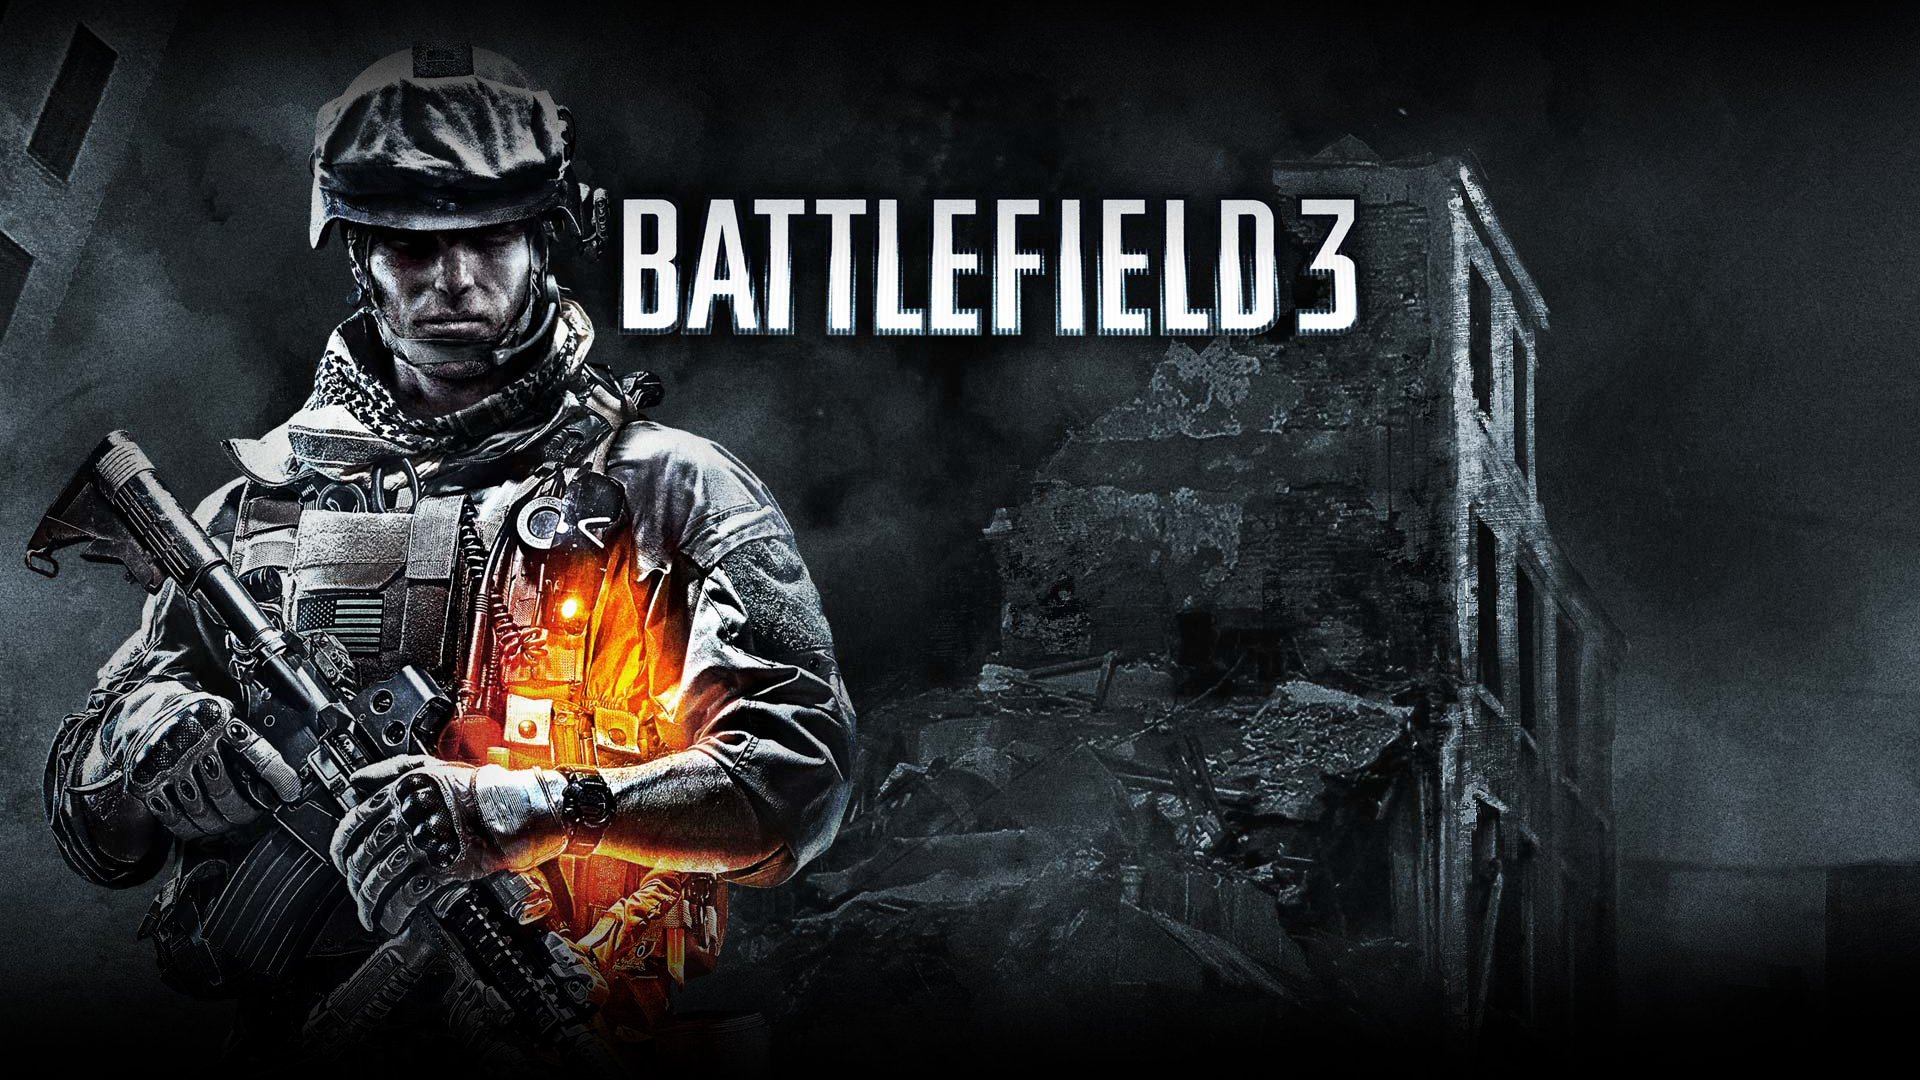 Battlefield 3 Wallpaper Debre By Machinimaother